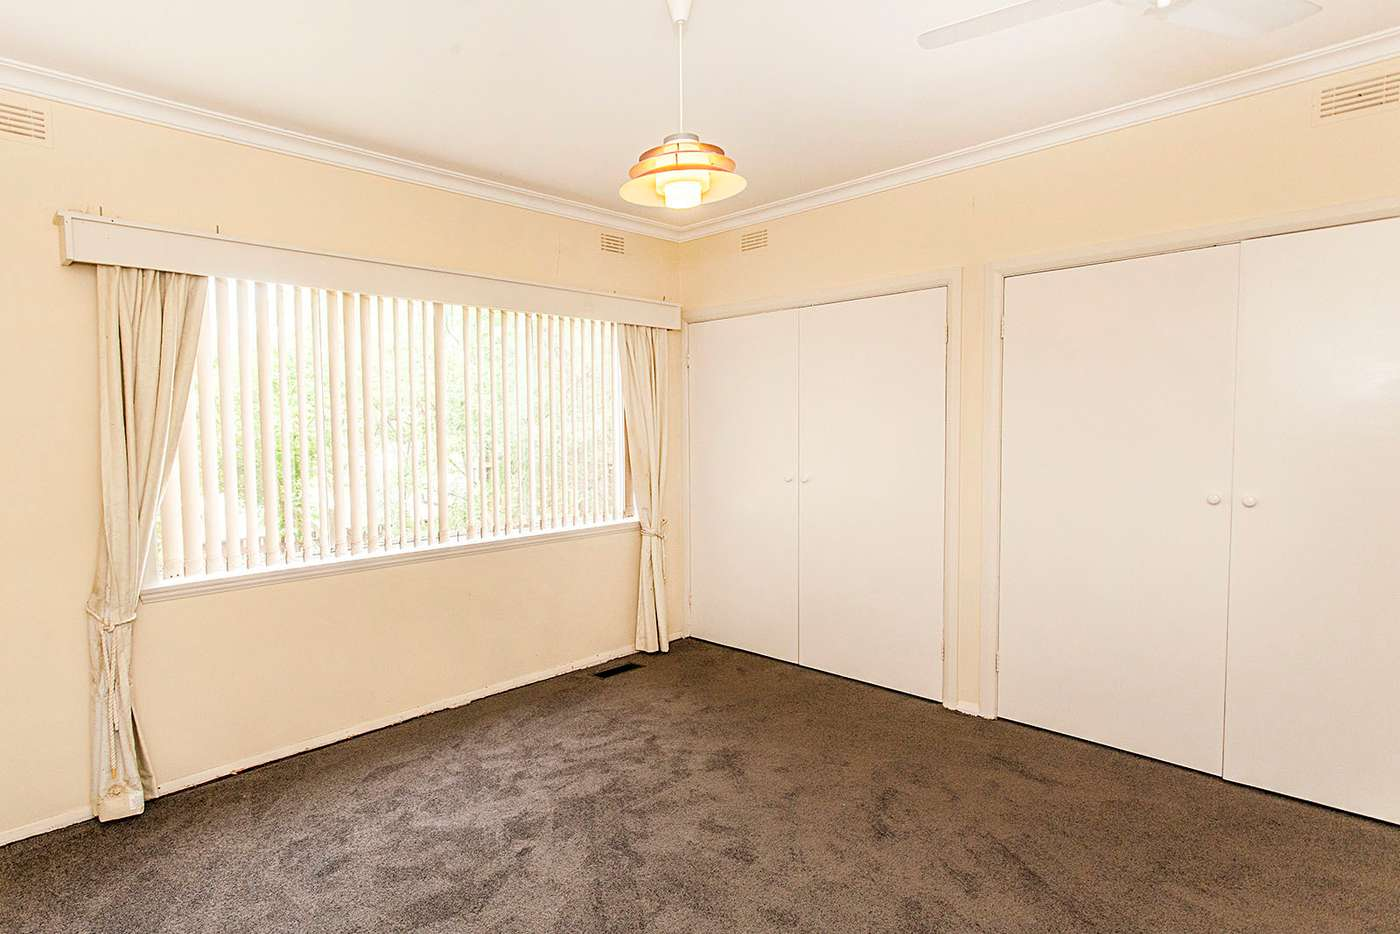 Sixth view of Homely house listing, 23 Quarry Road, Mitcham VIC 3132